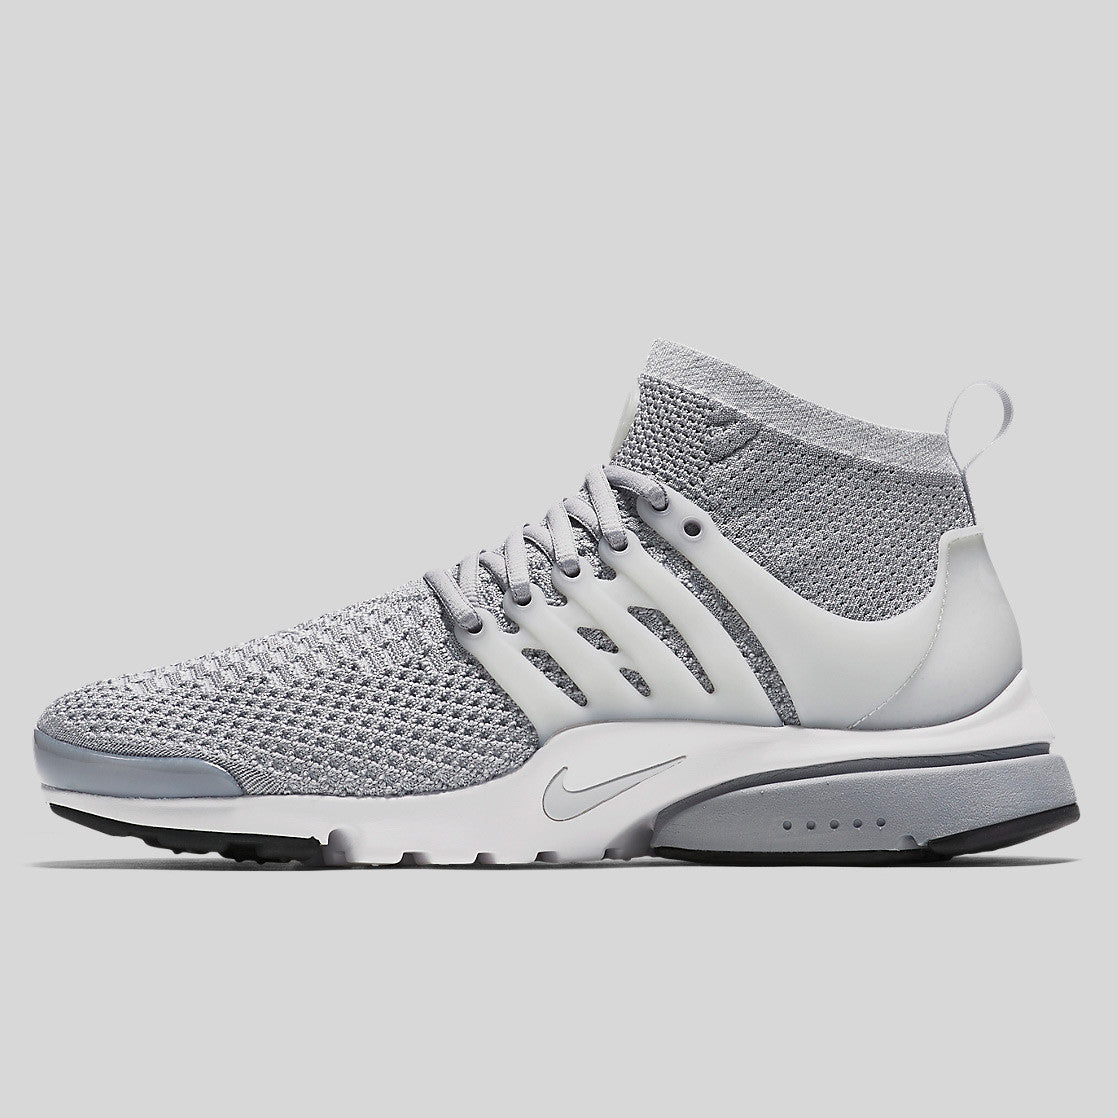 best sneakers 1f493 9bd5a Nike Air Presto Flyknit Ultra Wolf Grey Pure Platinum White (835570-002)